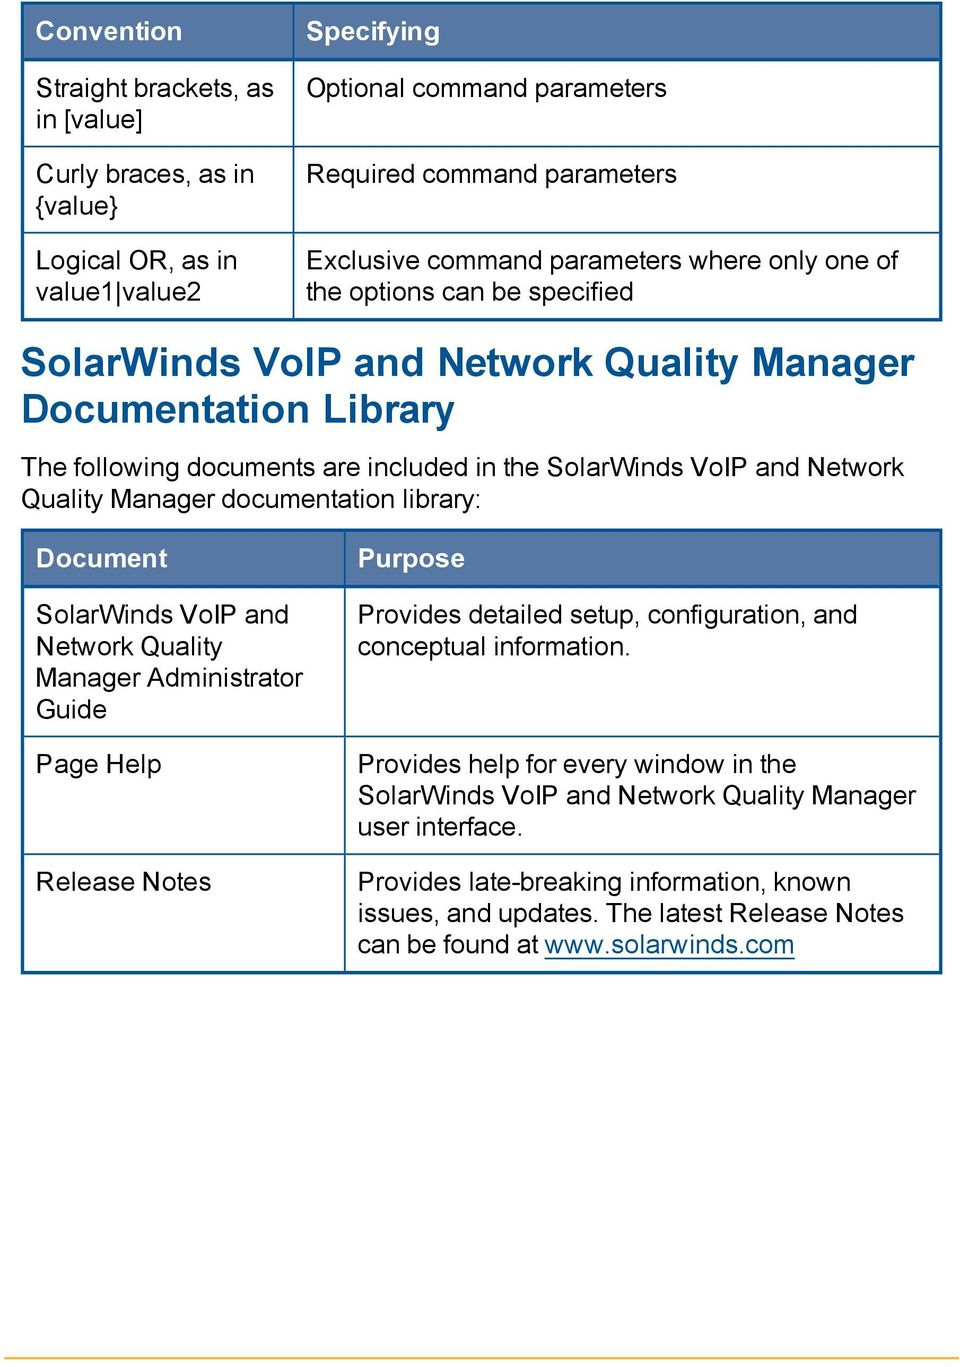 Manager documentation library: Document SolarWinds VoIP and Network Quality Manager Administrator Guide Page Help Release Notes Purpose Provides detailed setup, configuration, and conceptual